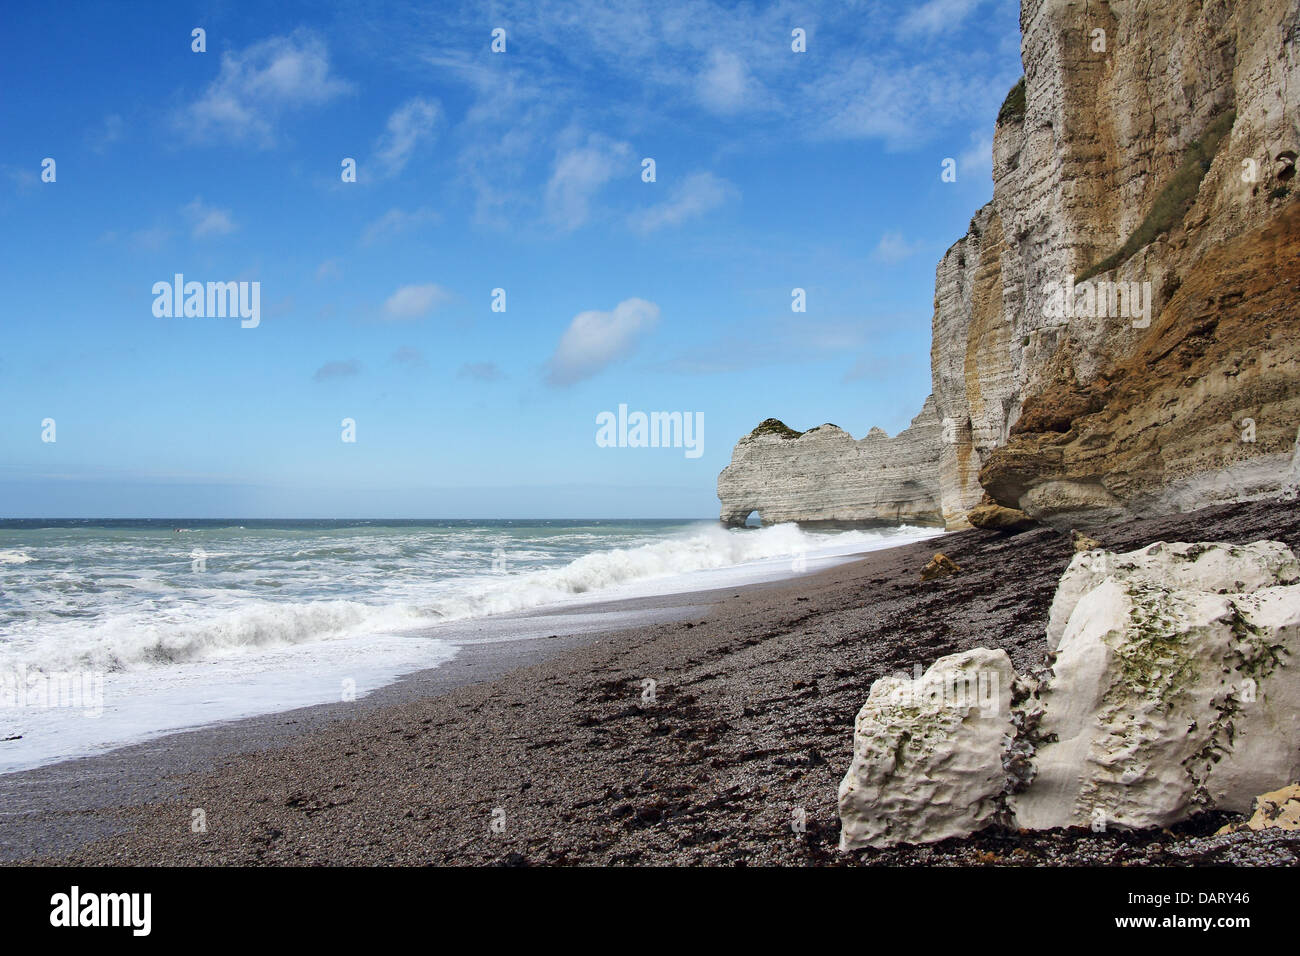 Etretat, natural rock arch wonder, cliff and beach. Normandy, France. - Stock Image